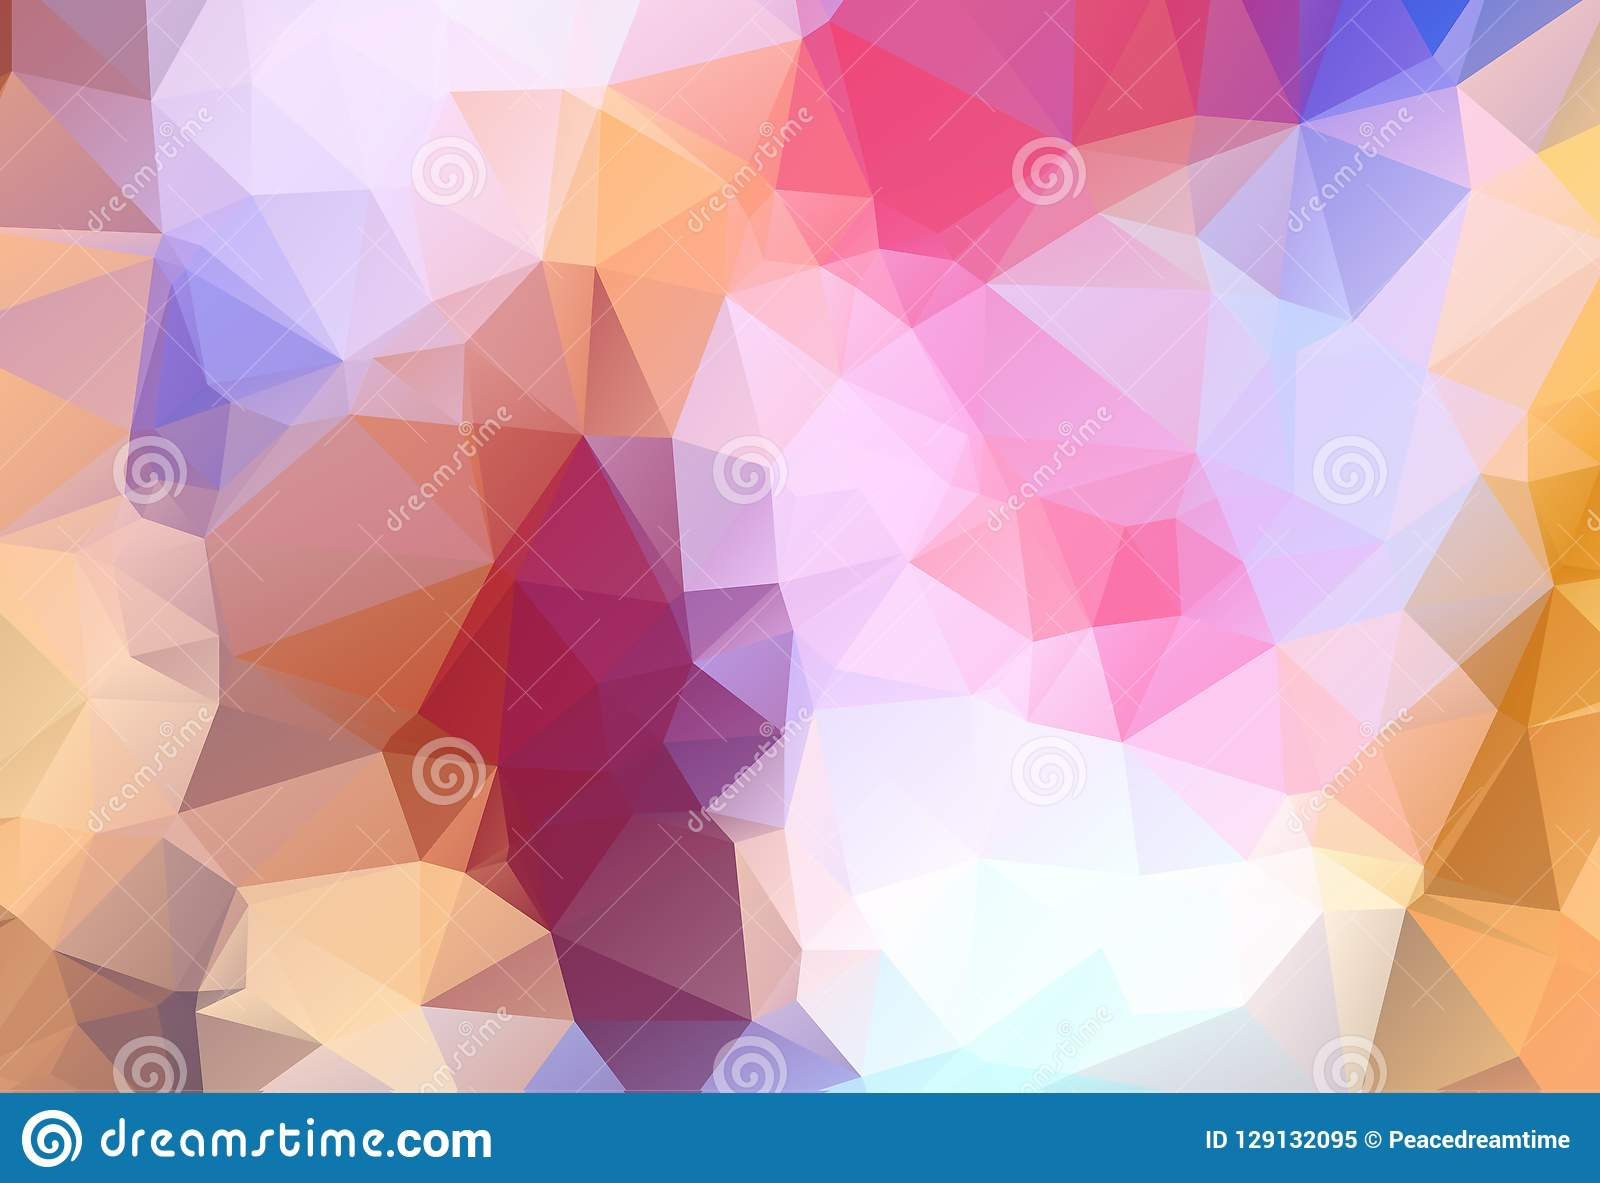 Abstract Multicolor blue, yellow, orange geometric rumpled triangular low poly style gradient illustration graphic background. Vec